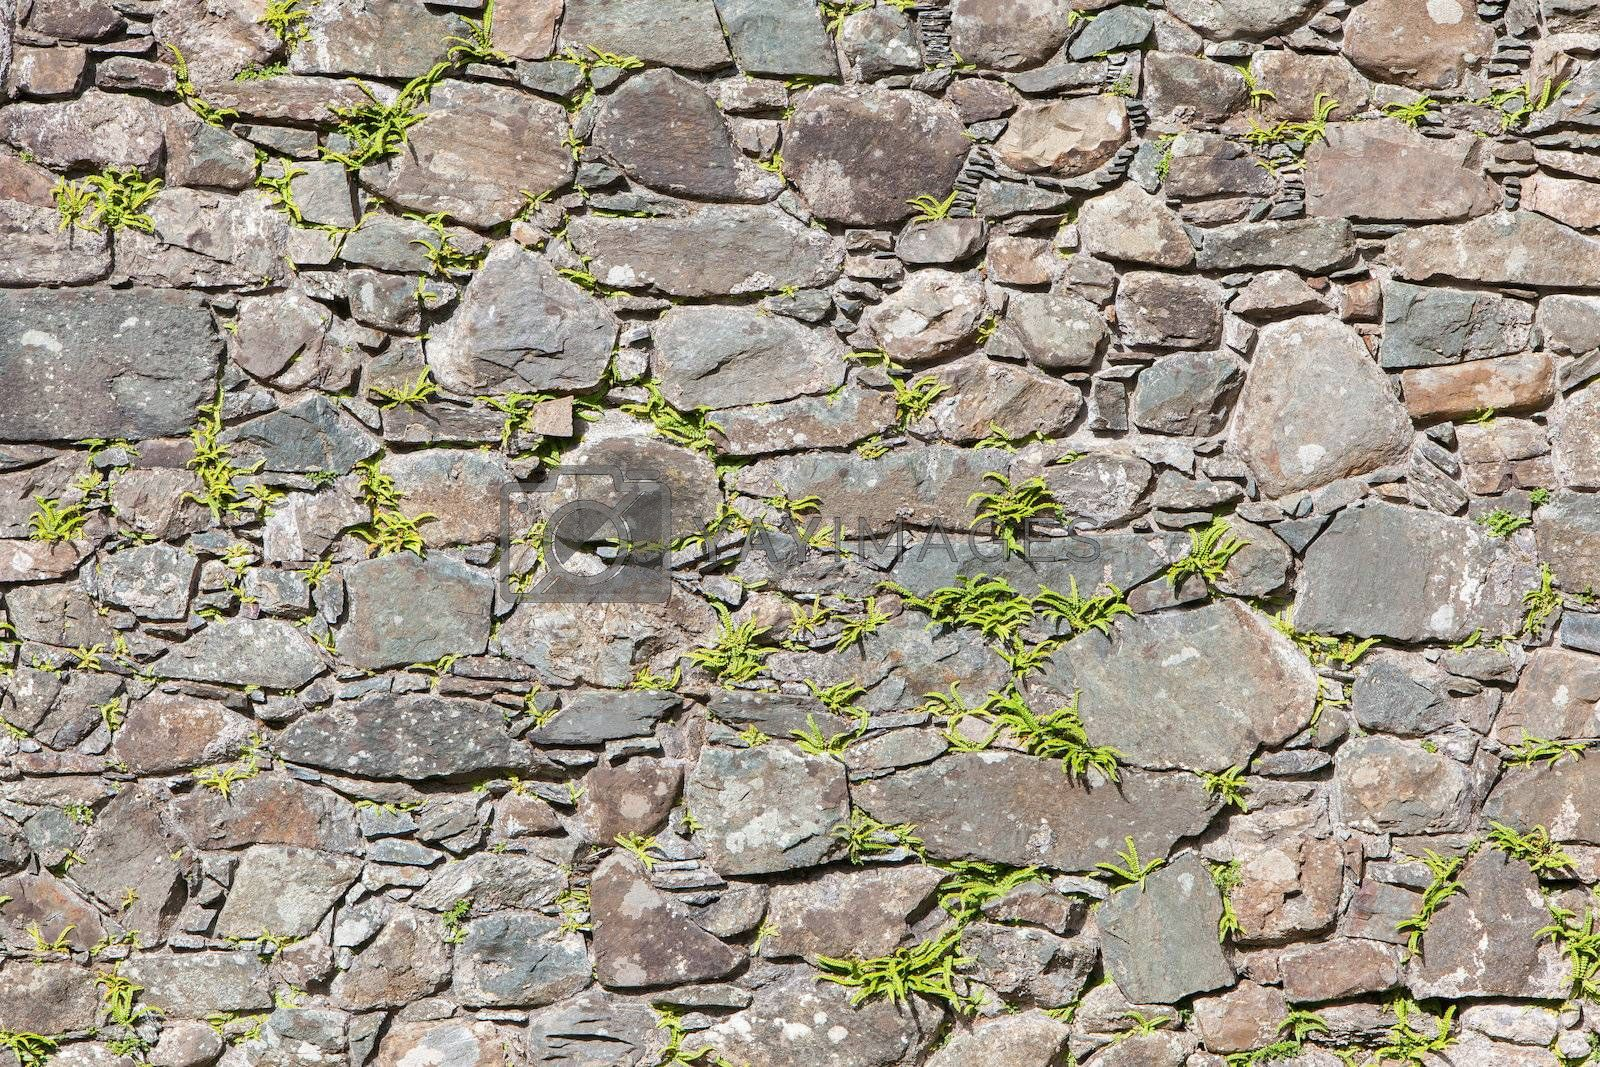 Antique natural stonewall, old stones in different sizes